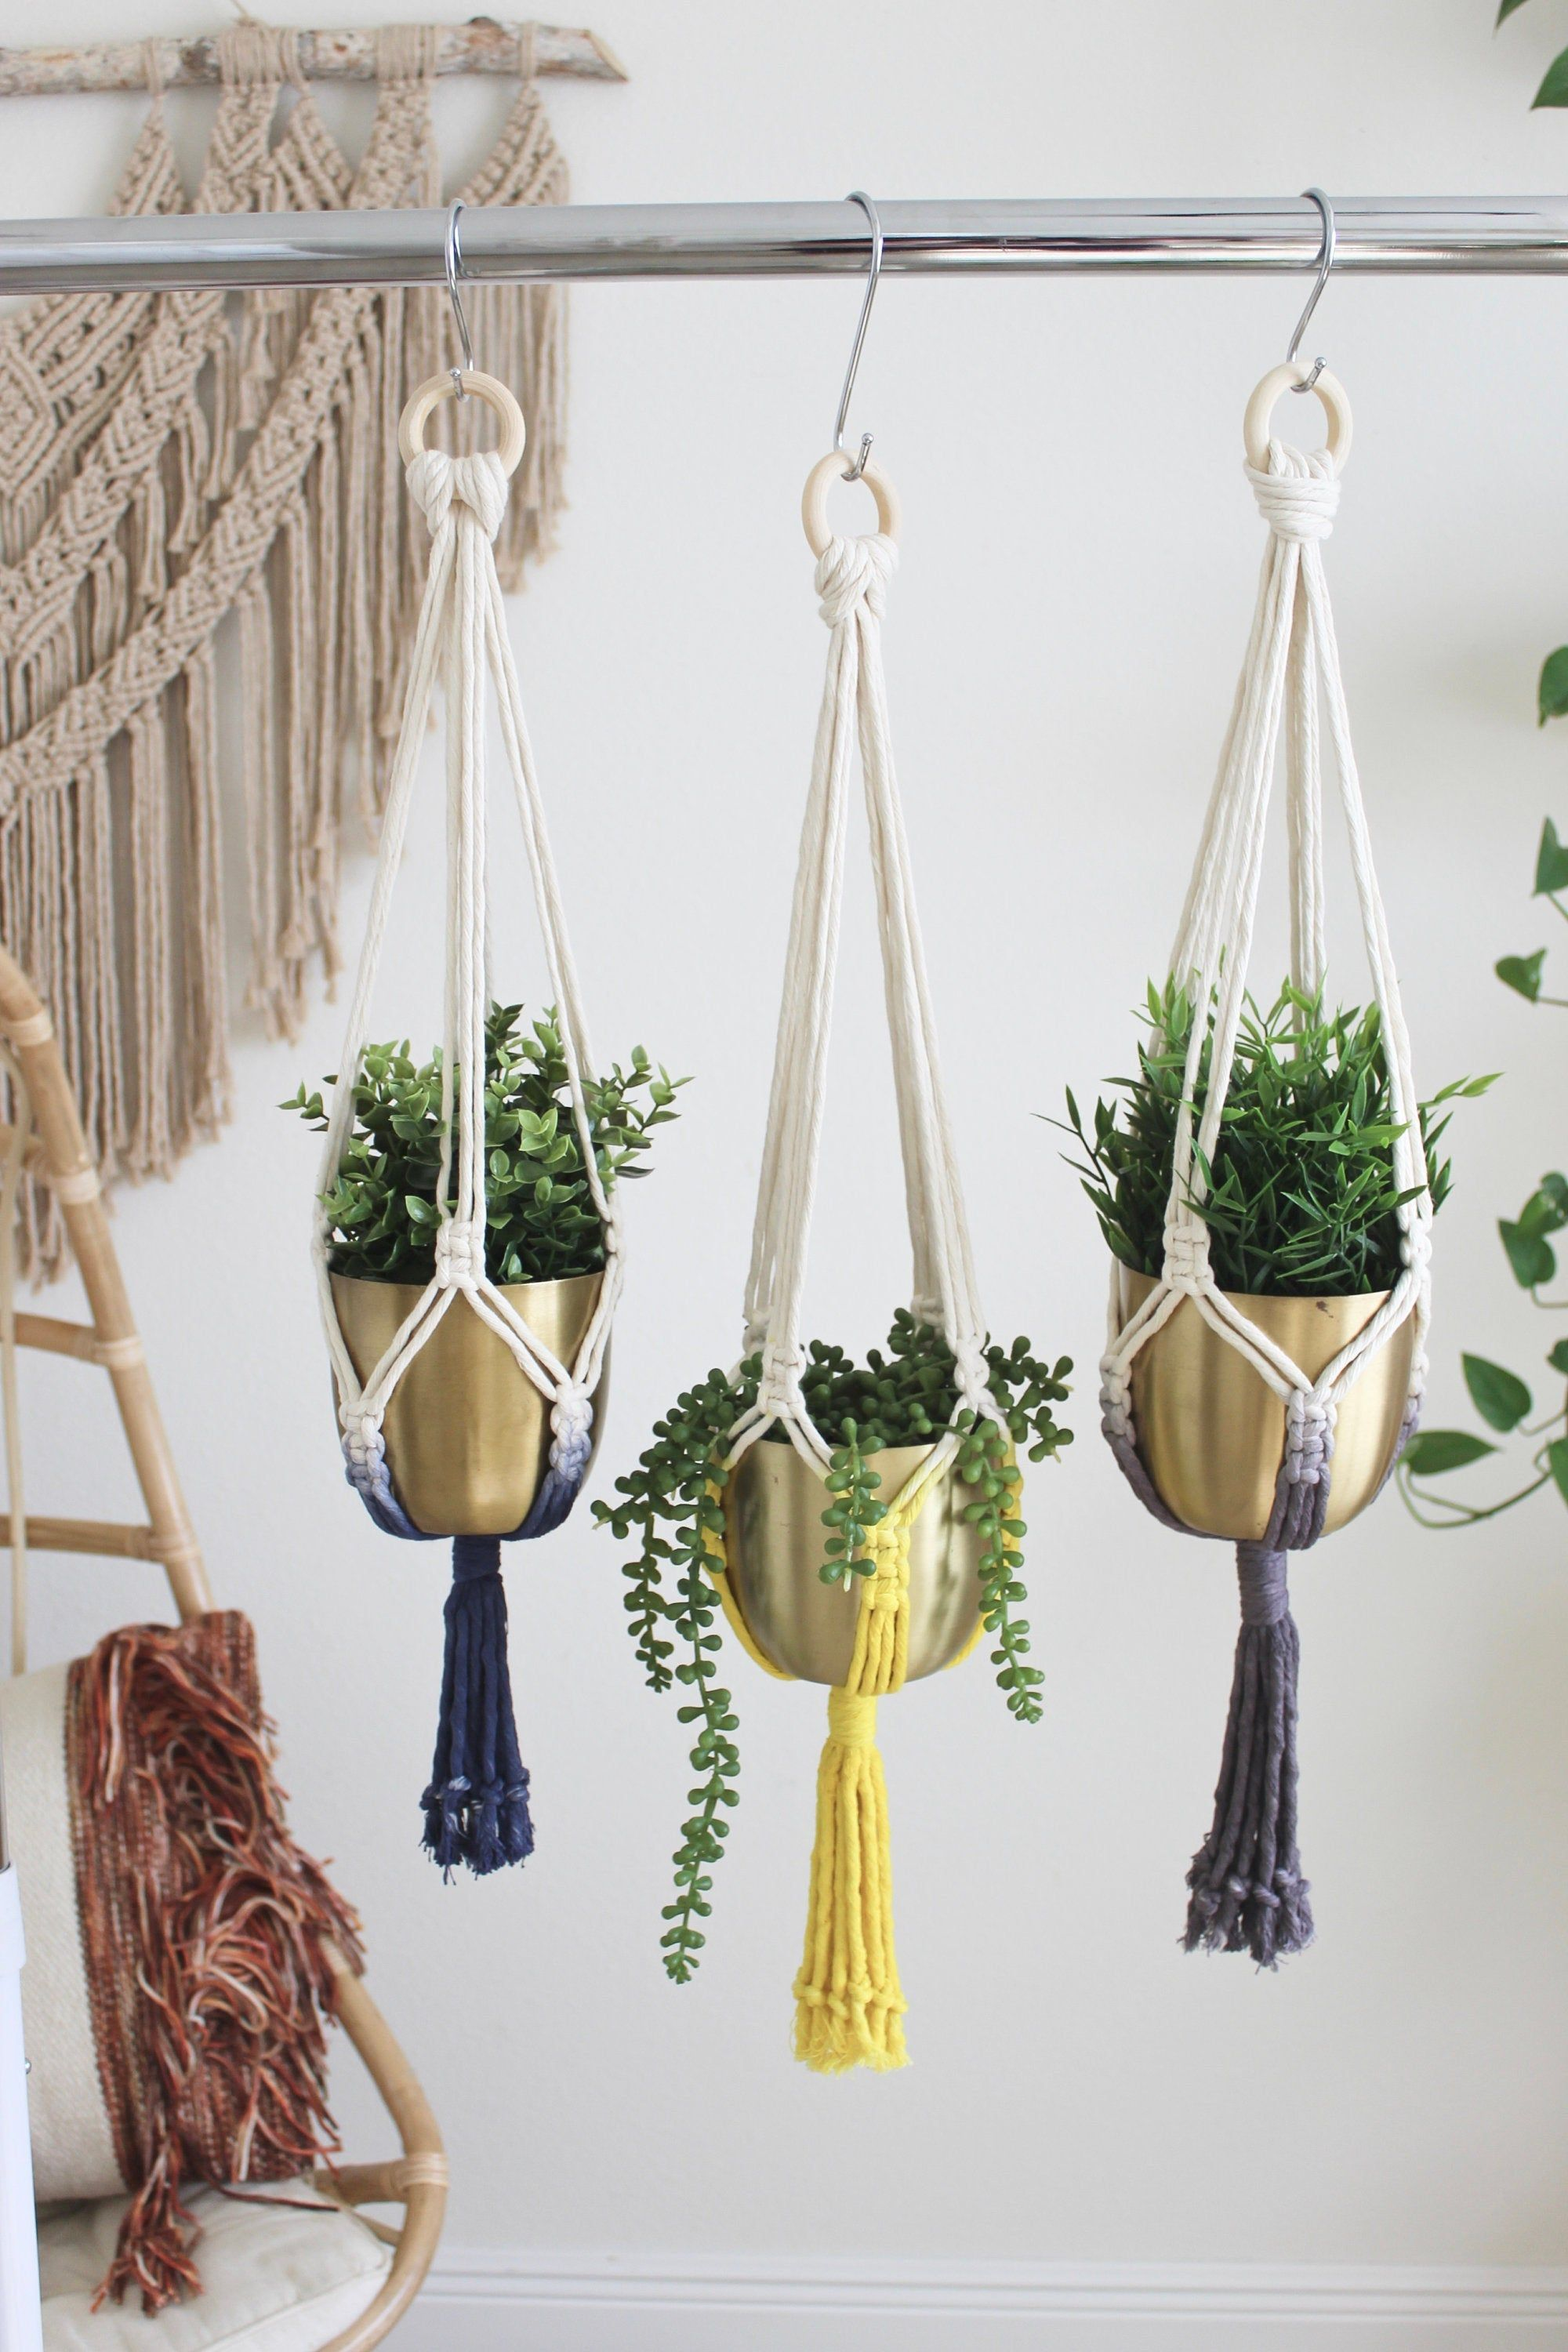 Indoor plants Home sweet home Gifts Wall hanging Hanging plant holder Gift ideas. New home Hanging planter Macrame plant hanger